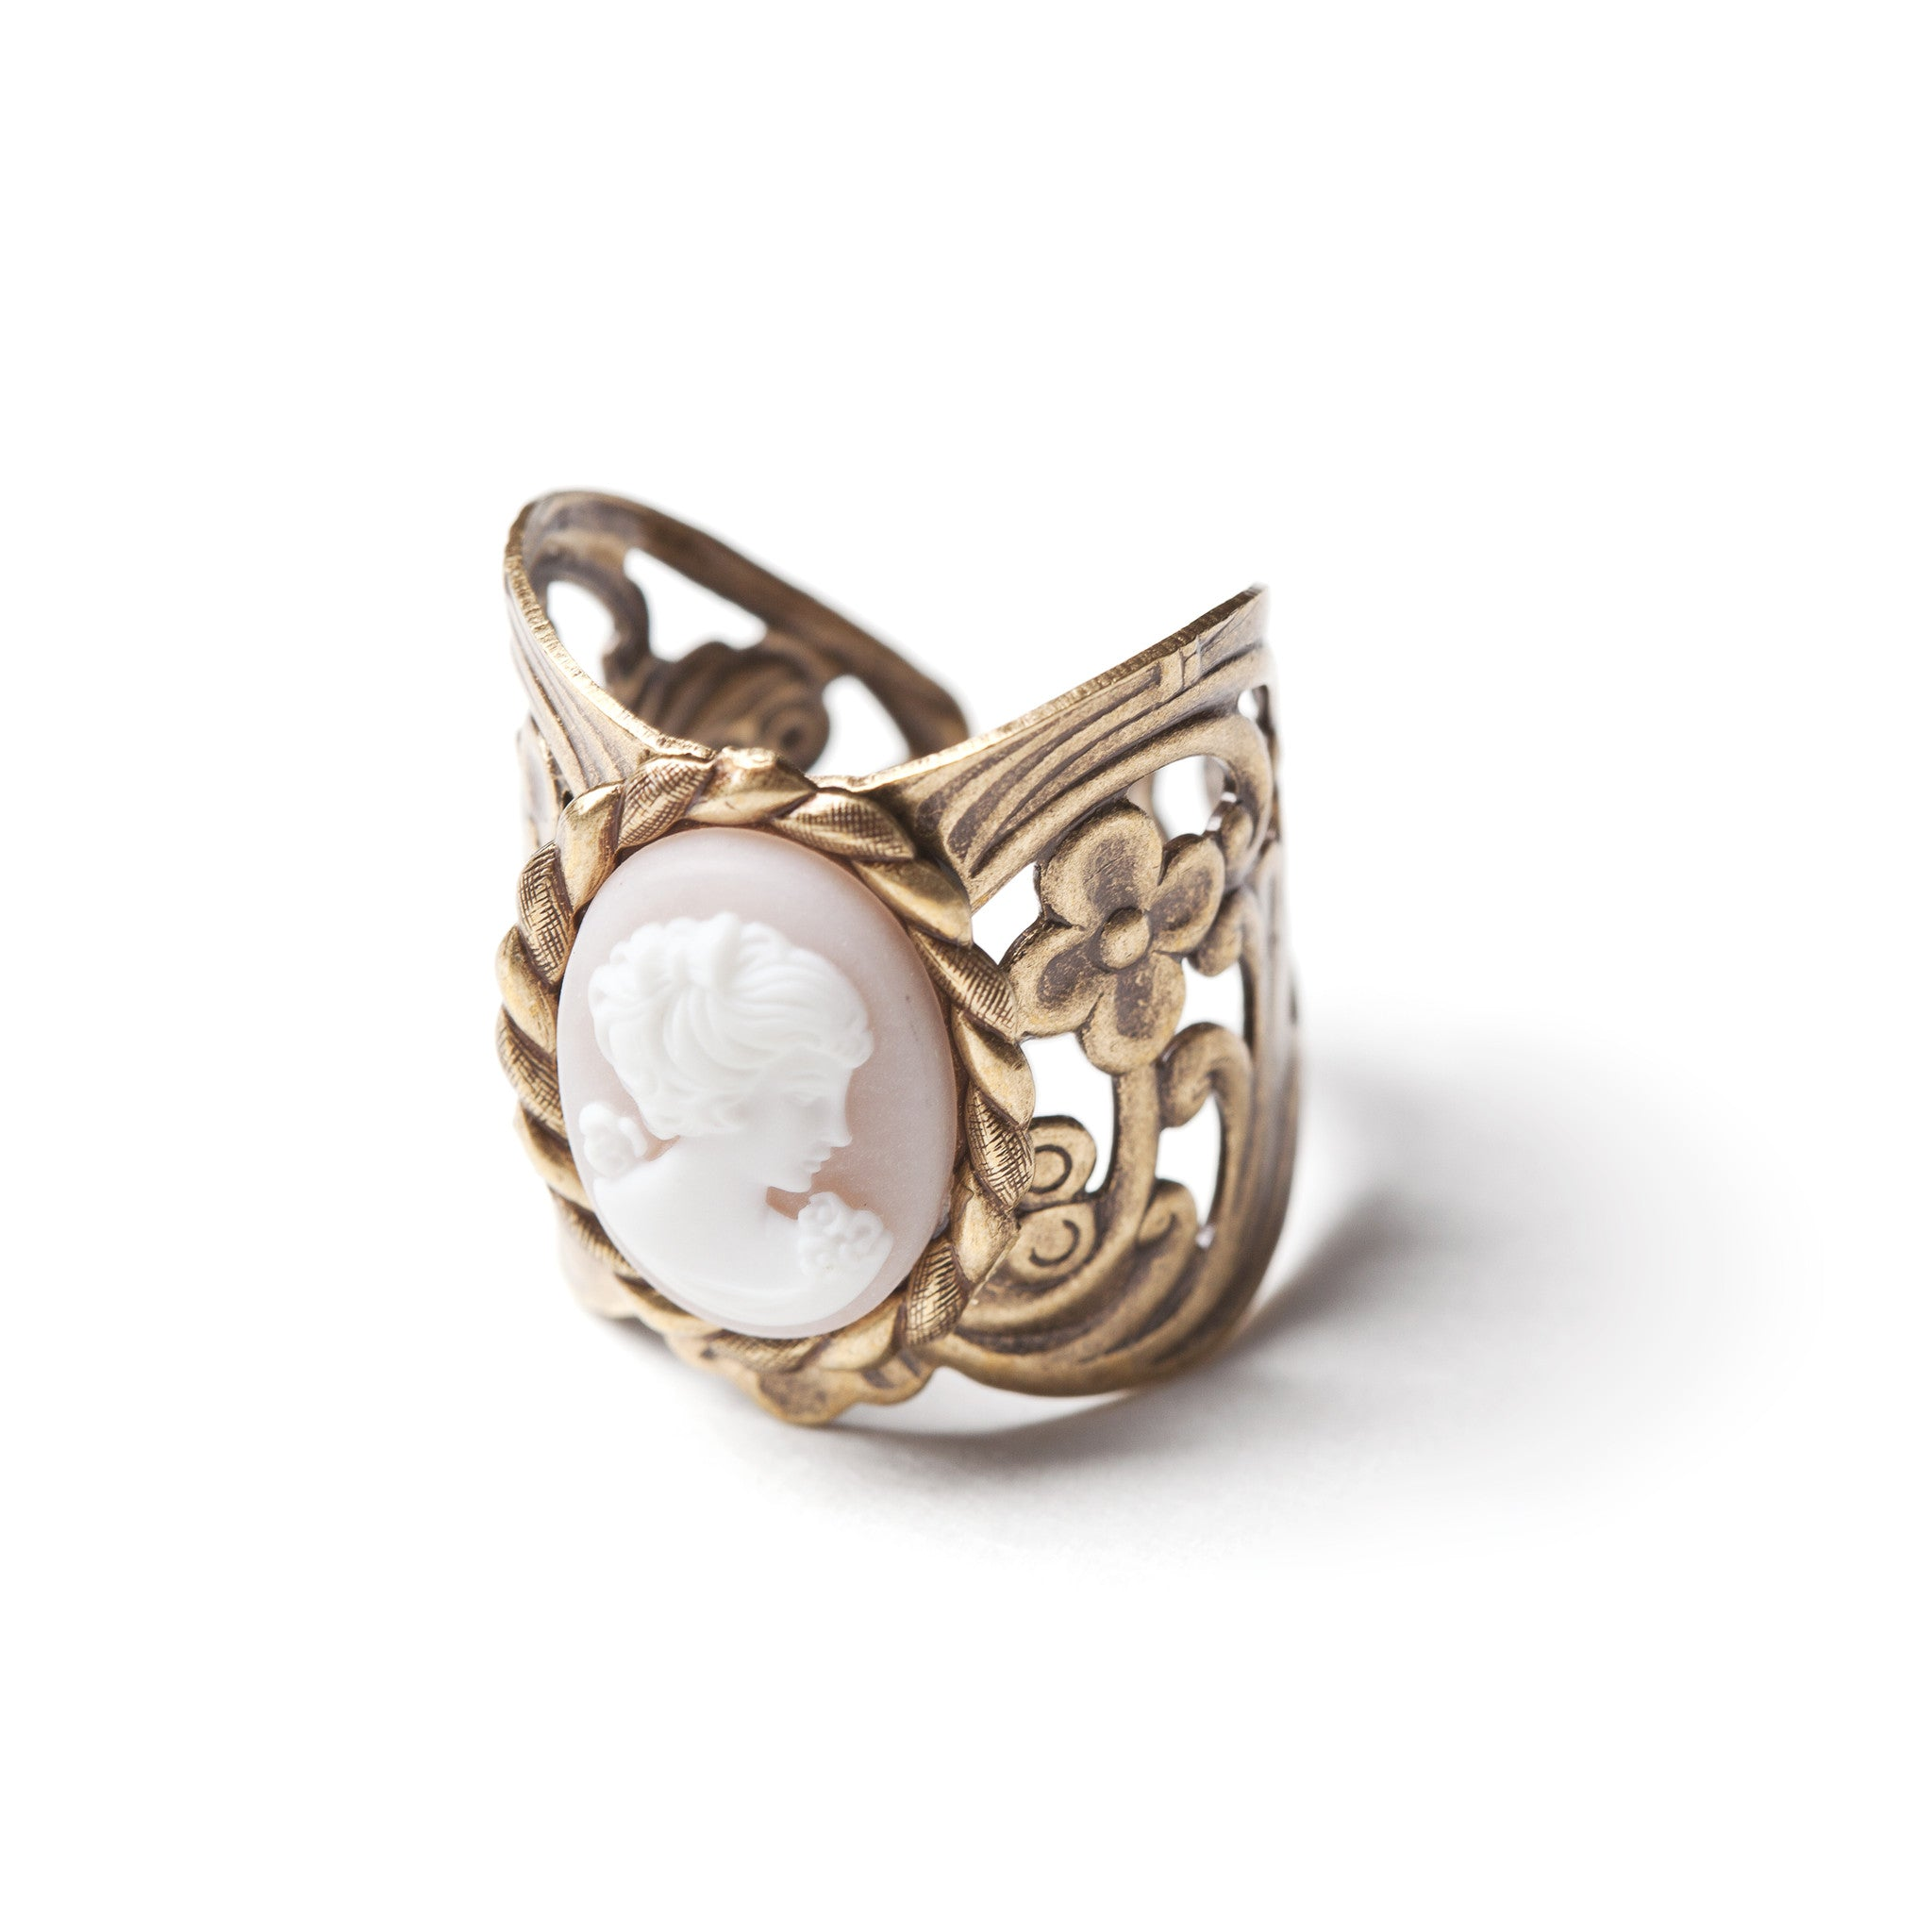 Angelskin cameo ring